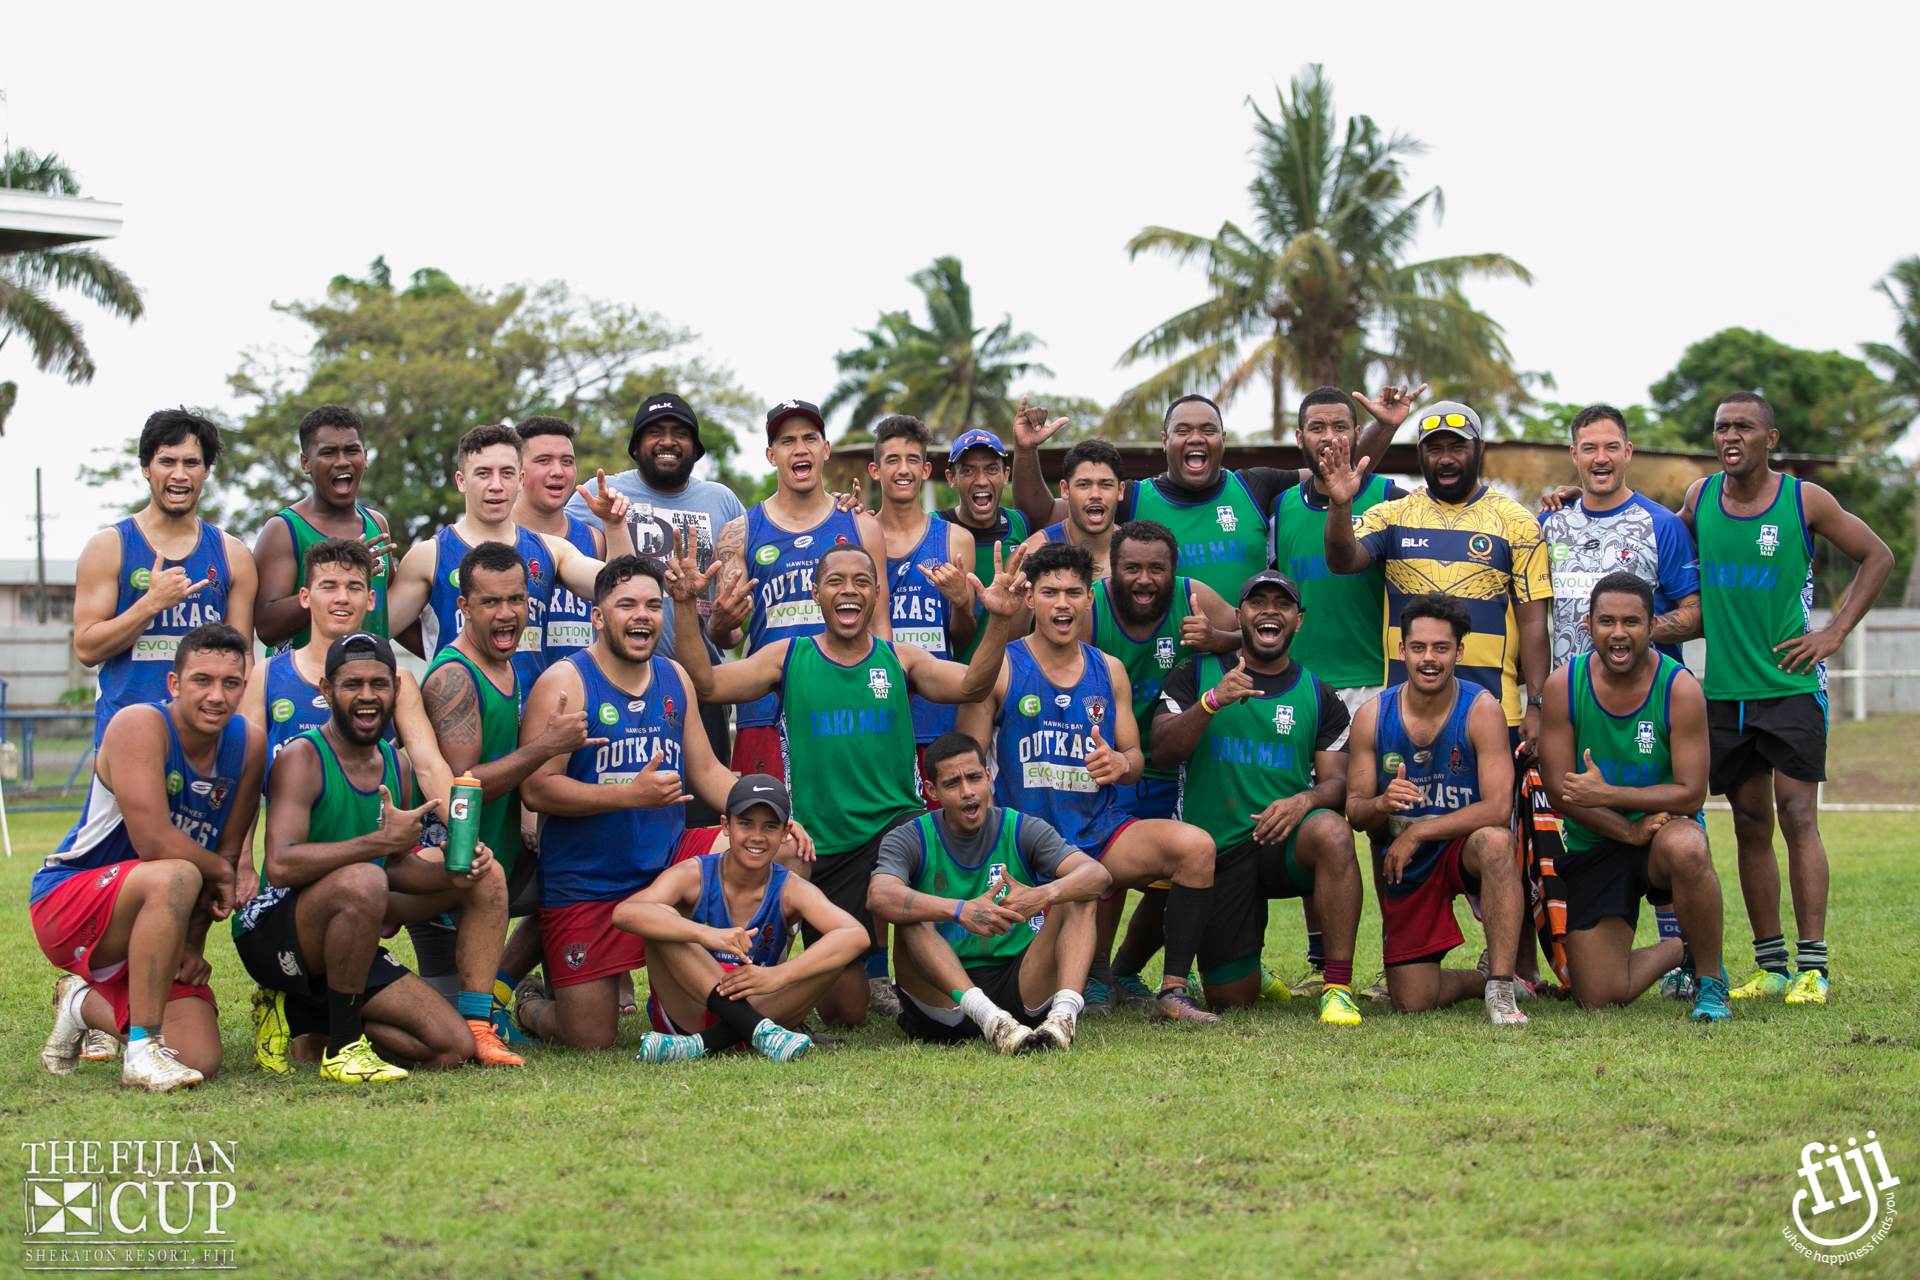 Photography at The Fijian Cup